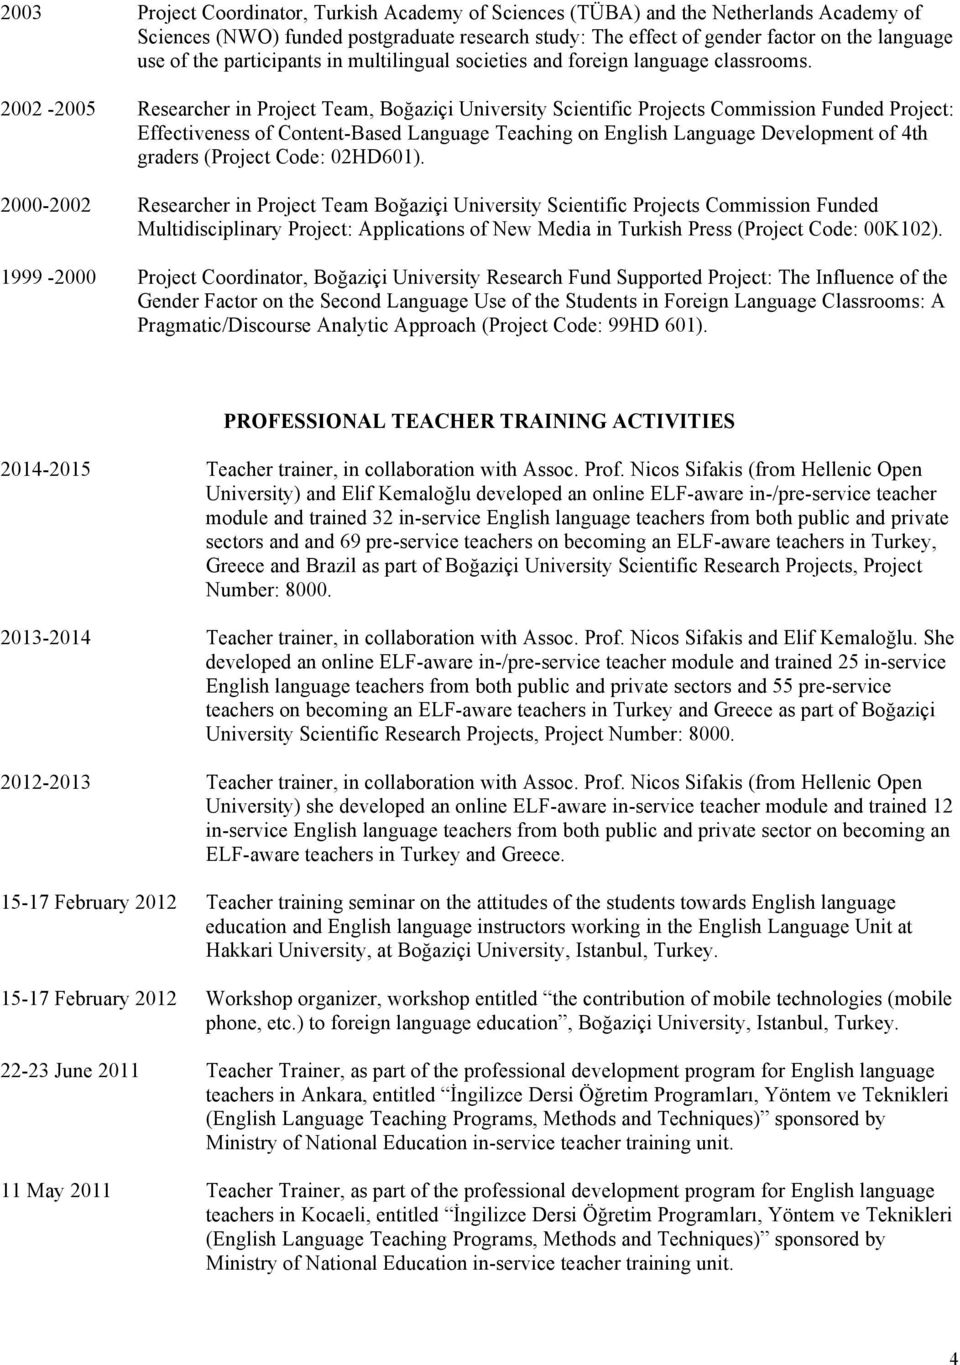 2002-2005 Researcher in Project Team, Boğaziçi University Scientific Projects Commission Funded Project: Effectiveness of Content-Based Language Teaching on English Language Development of 4th